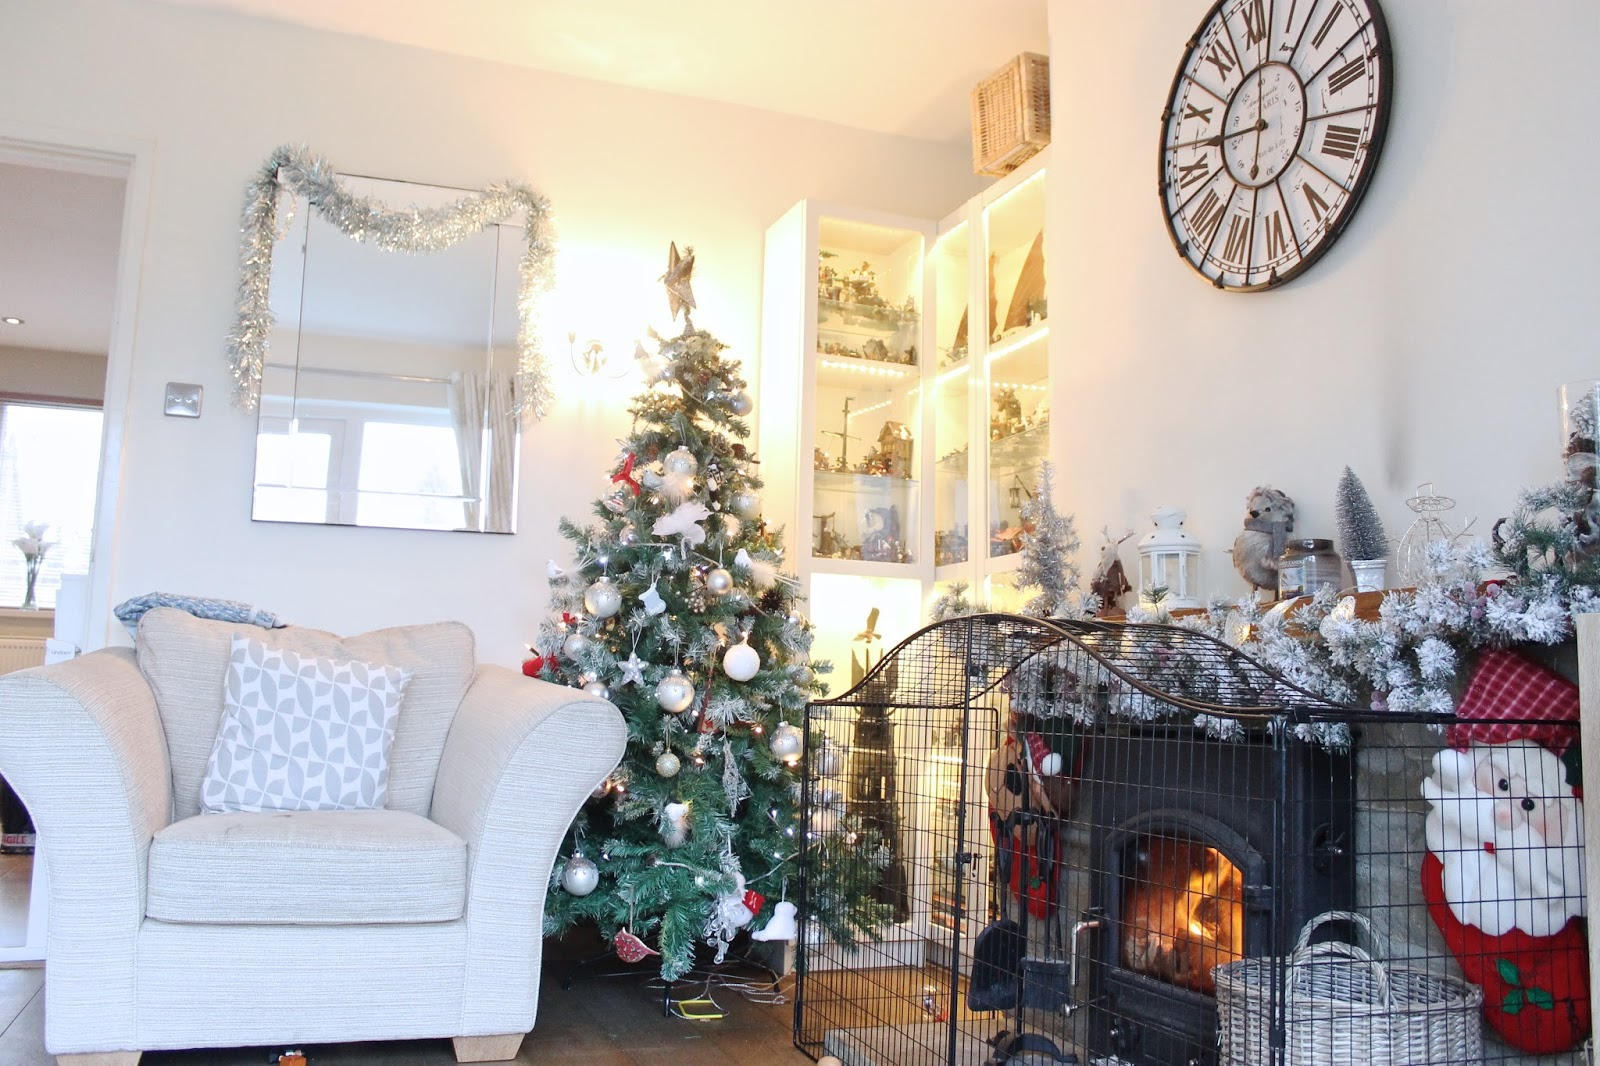 Our Christmas Home Decor - An Award-Nominated Family and ...